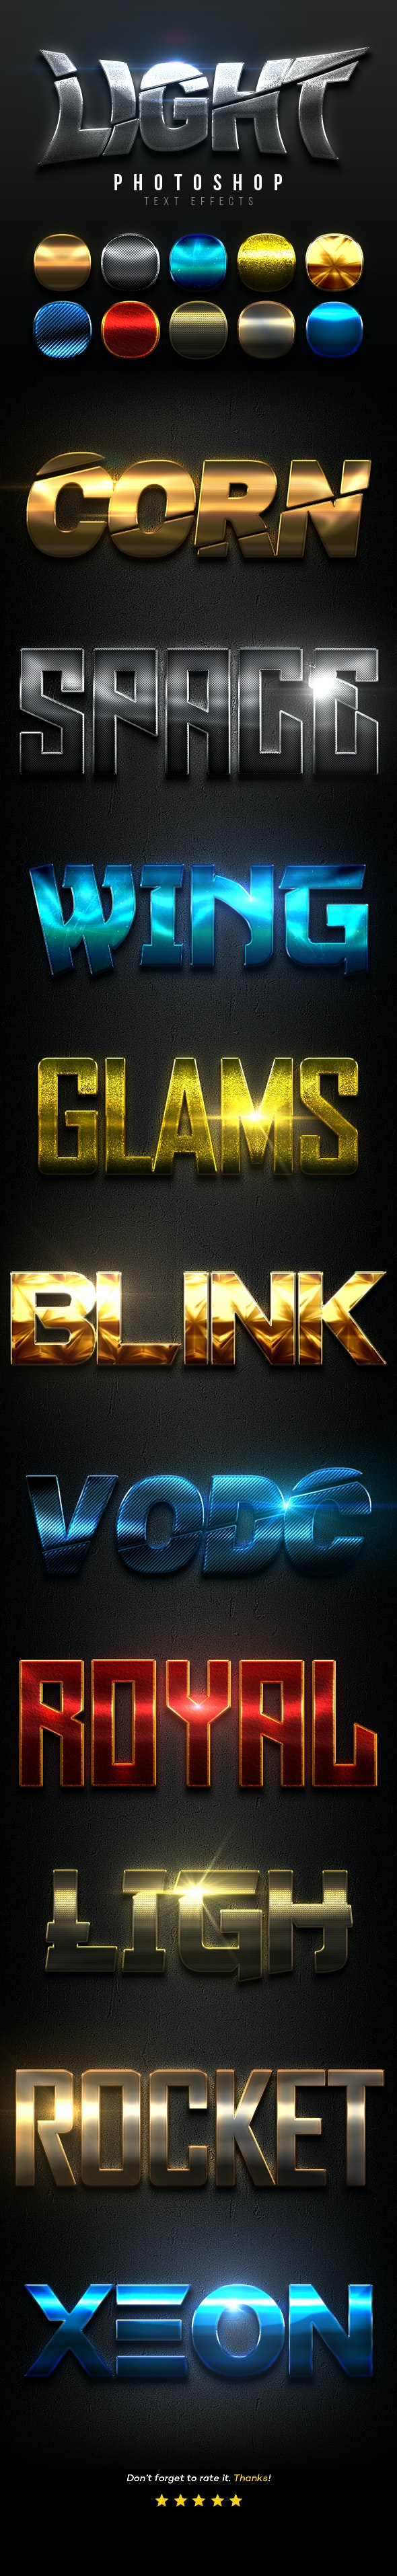 Light Text Effects Vol.5 - Text Effects Actions